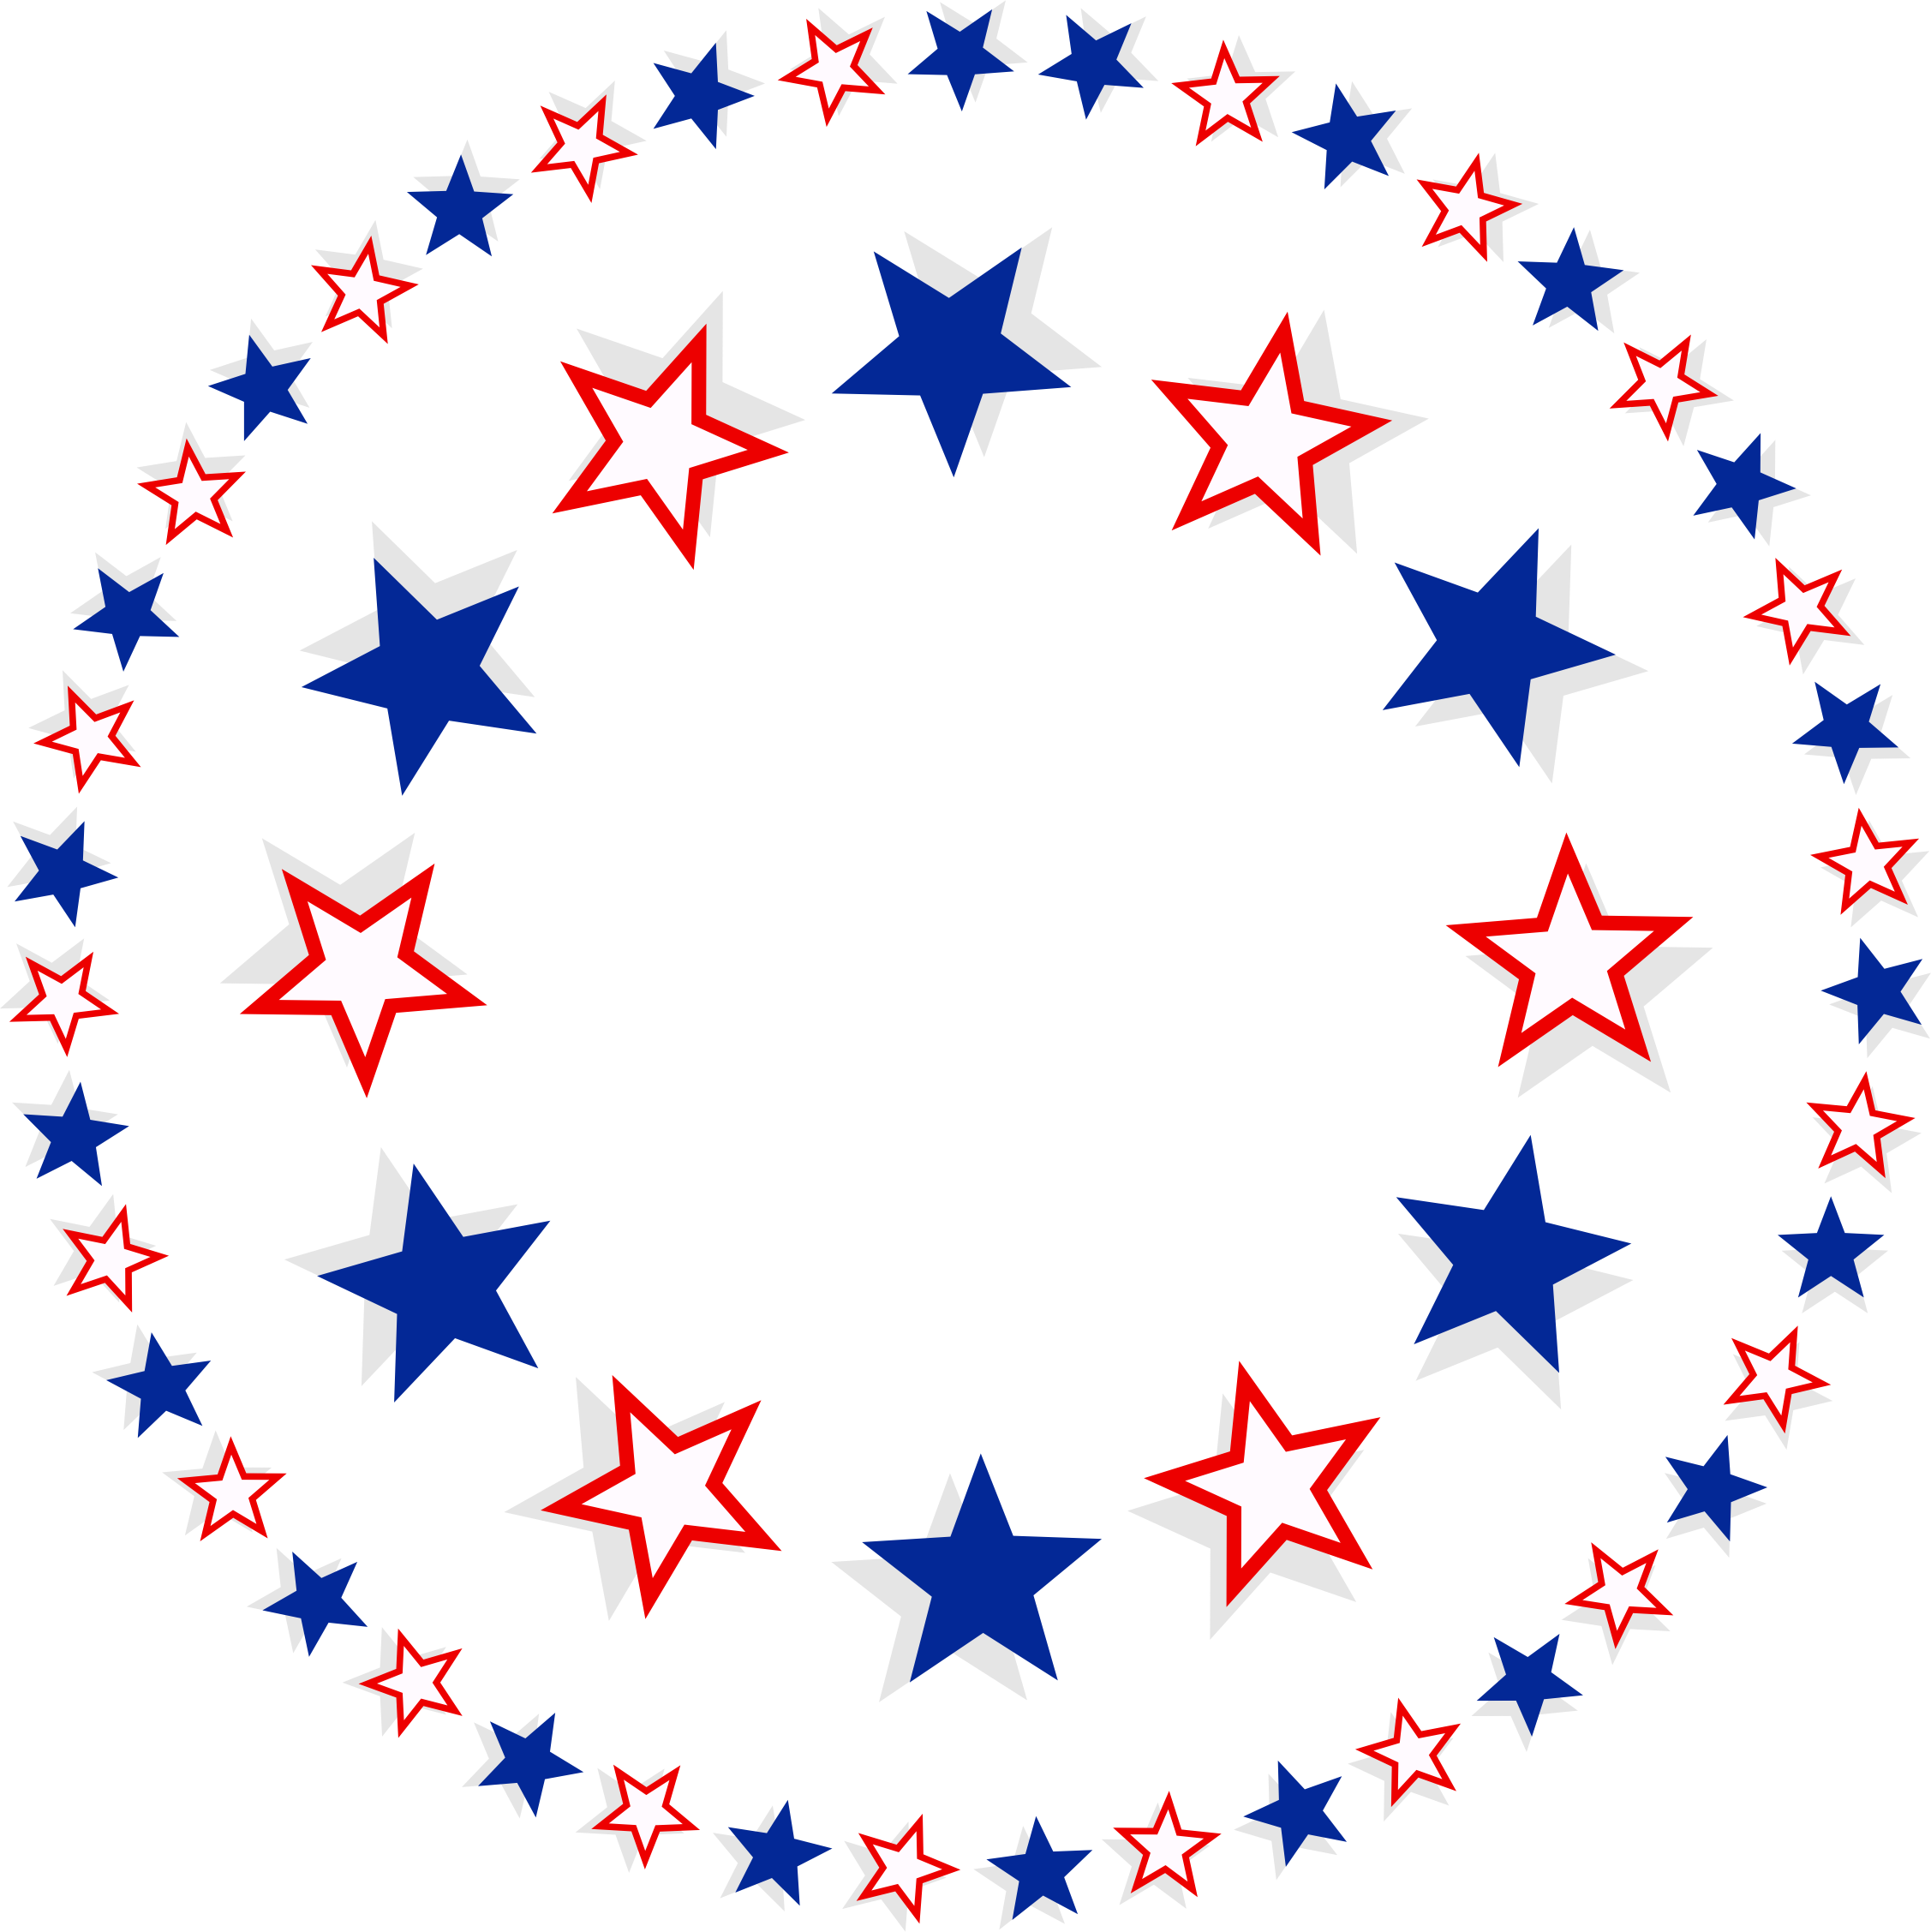 Free patriotic clipart american art - Cliparting.com